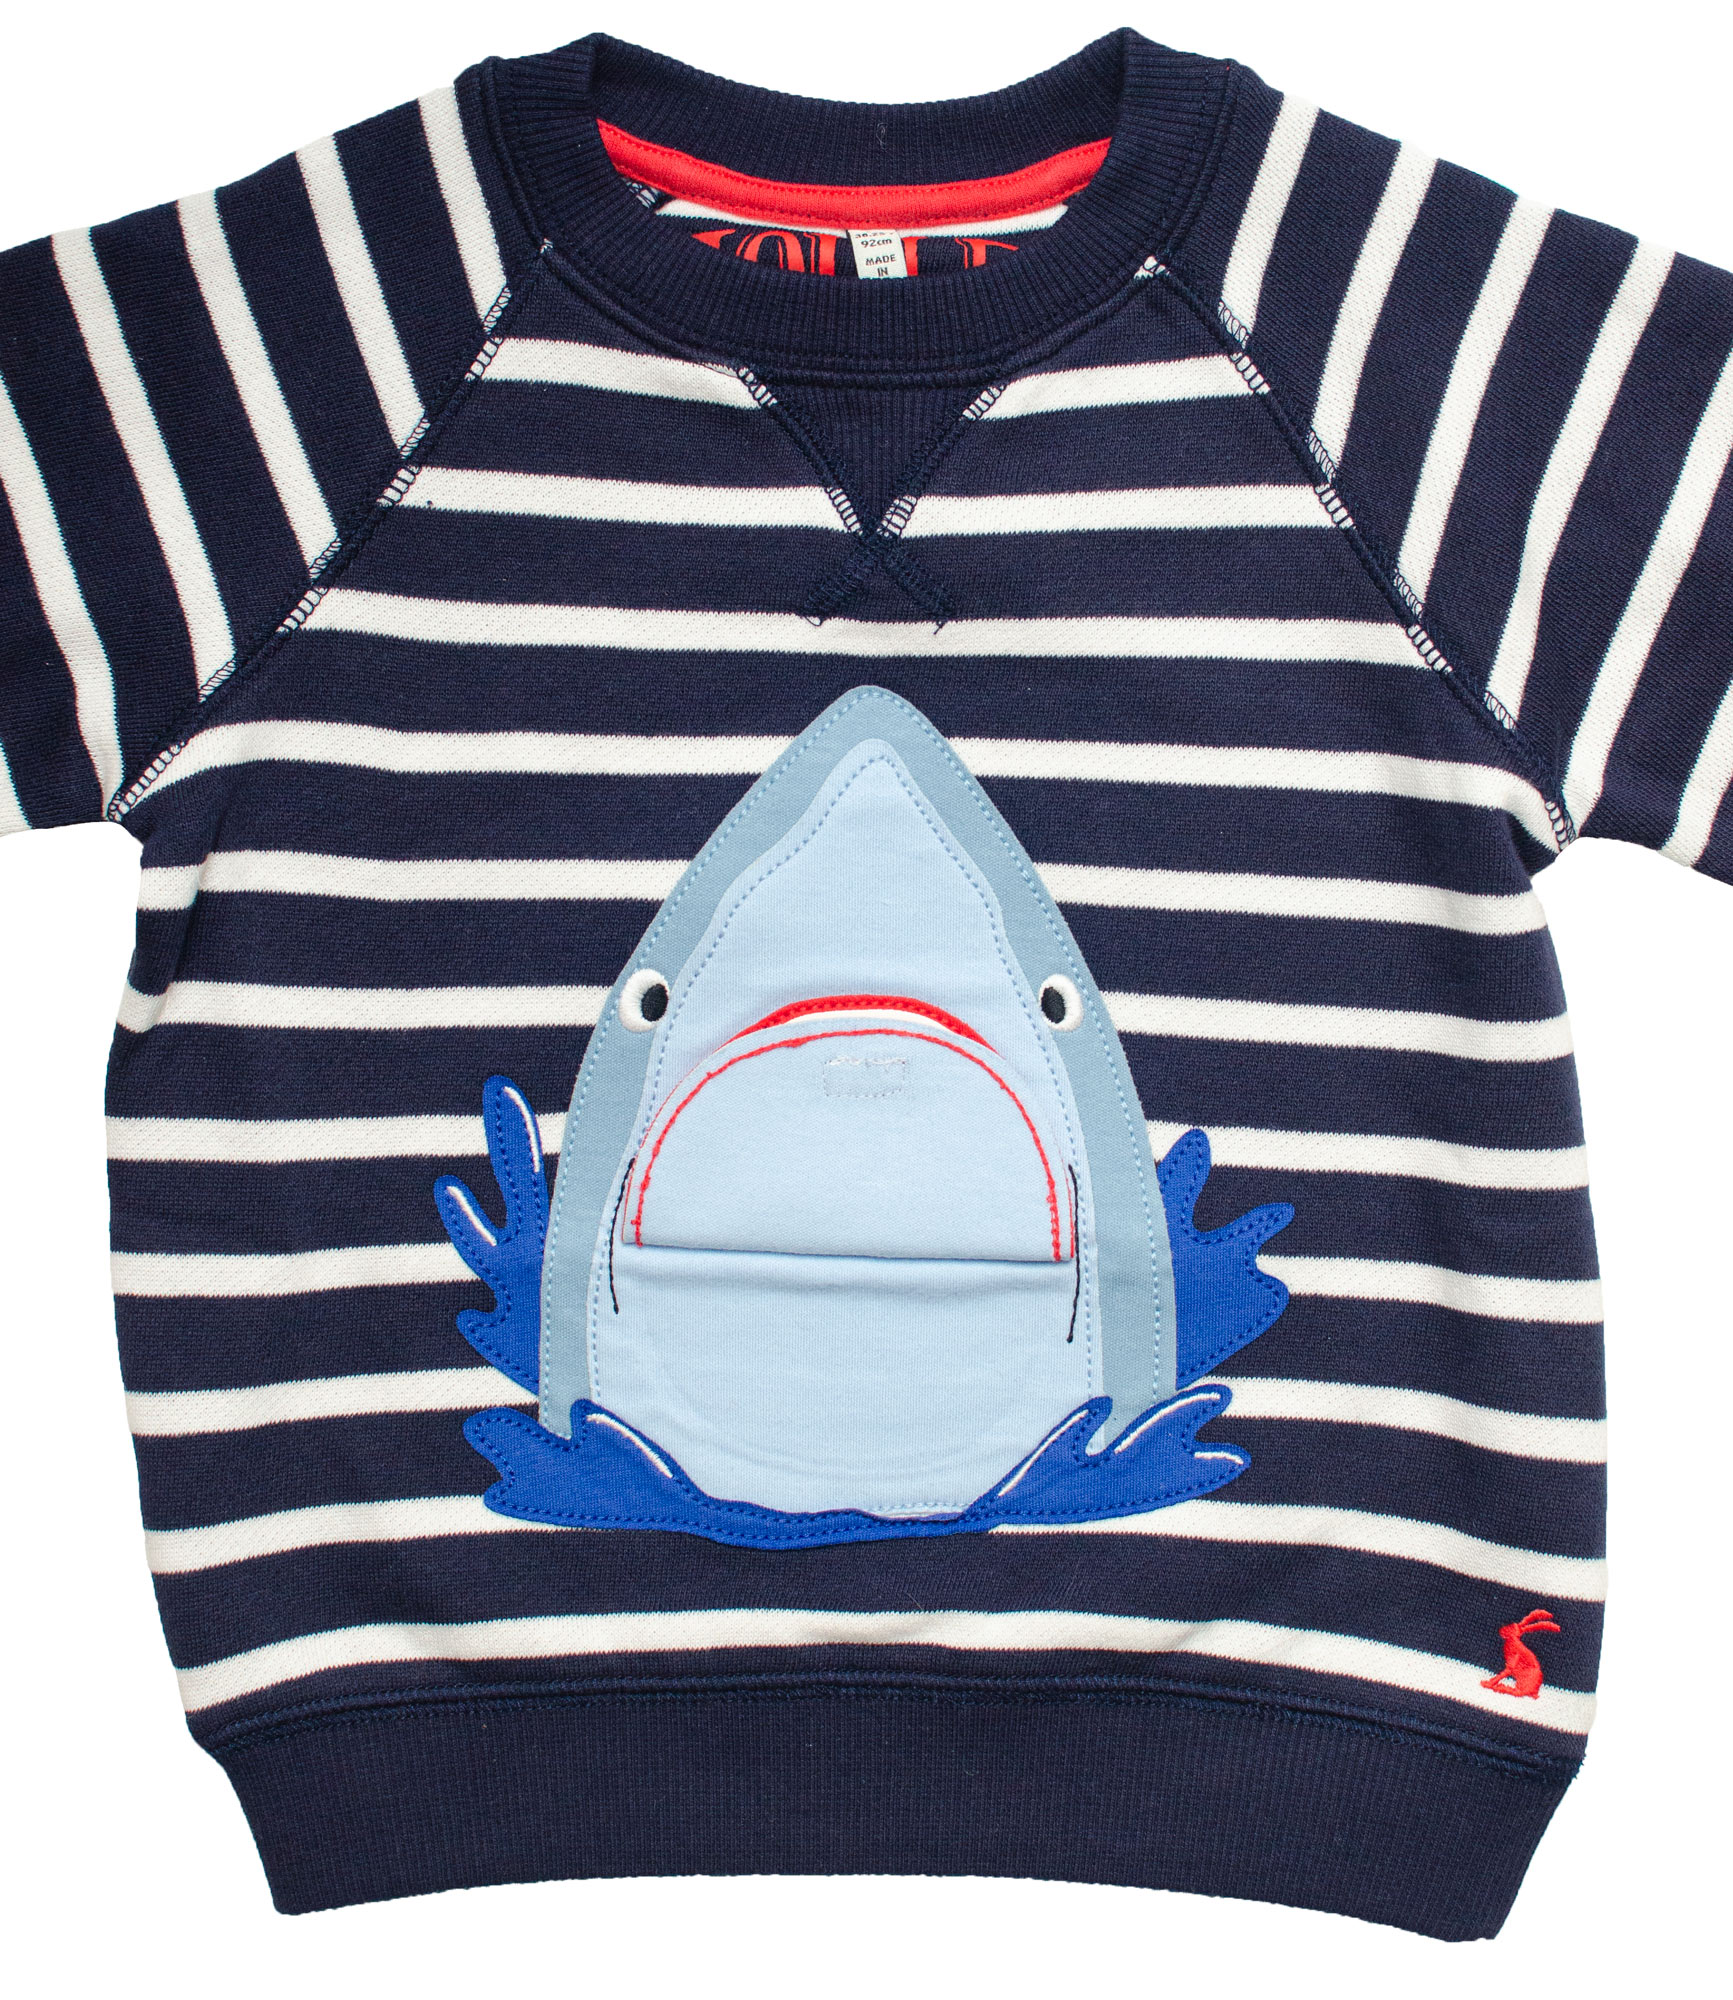 Shark chomp t-shirt illustration by Elly Jahnz for Joules